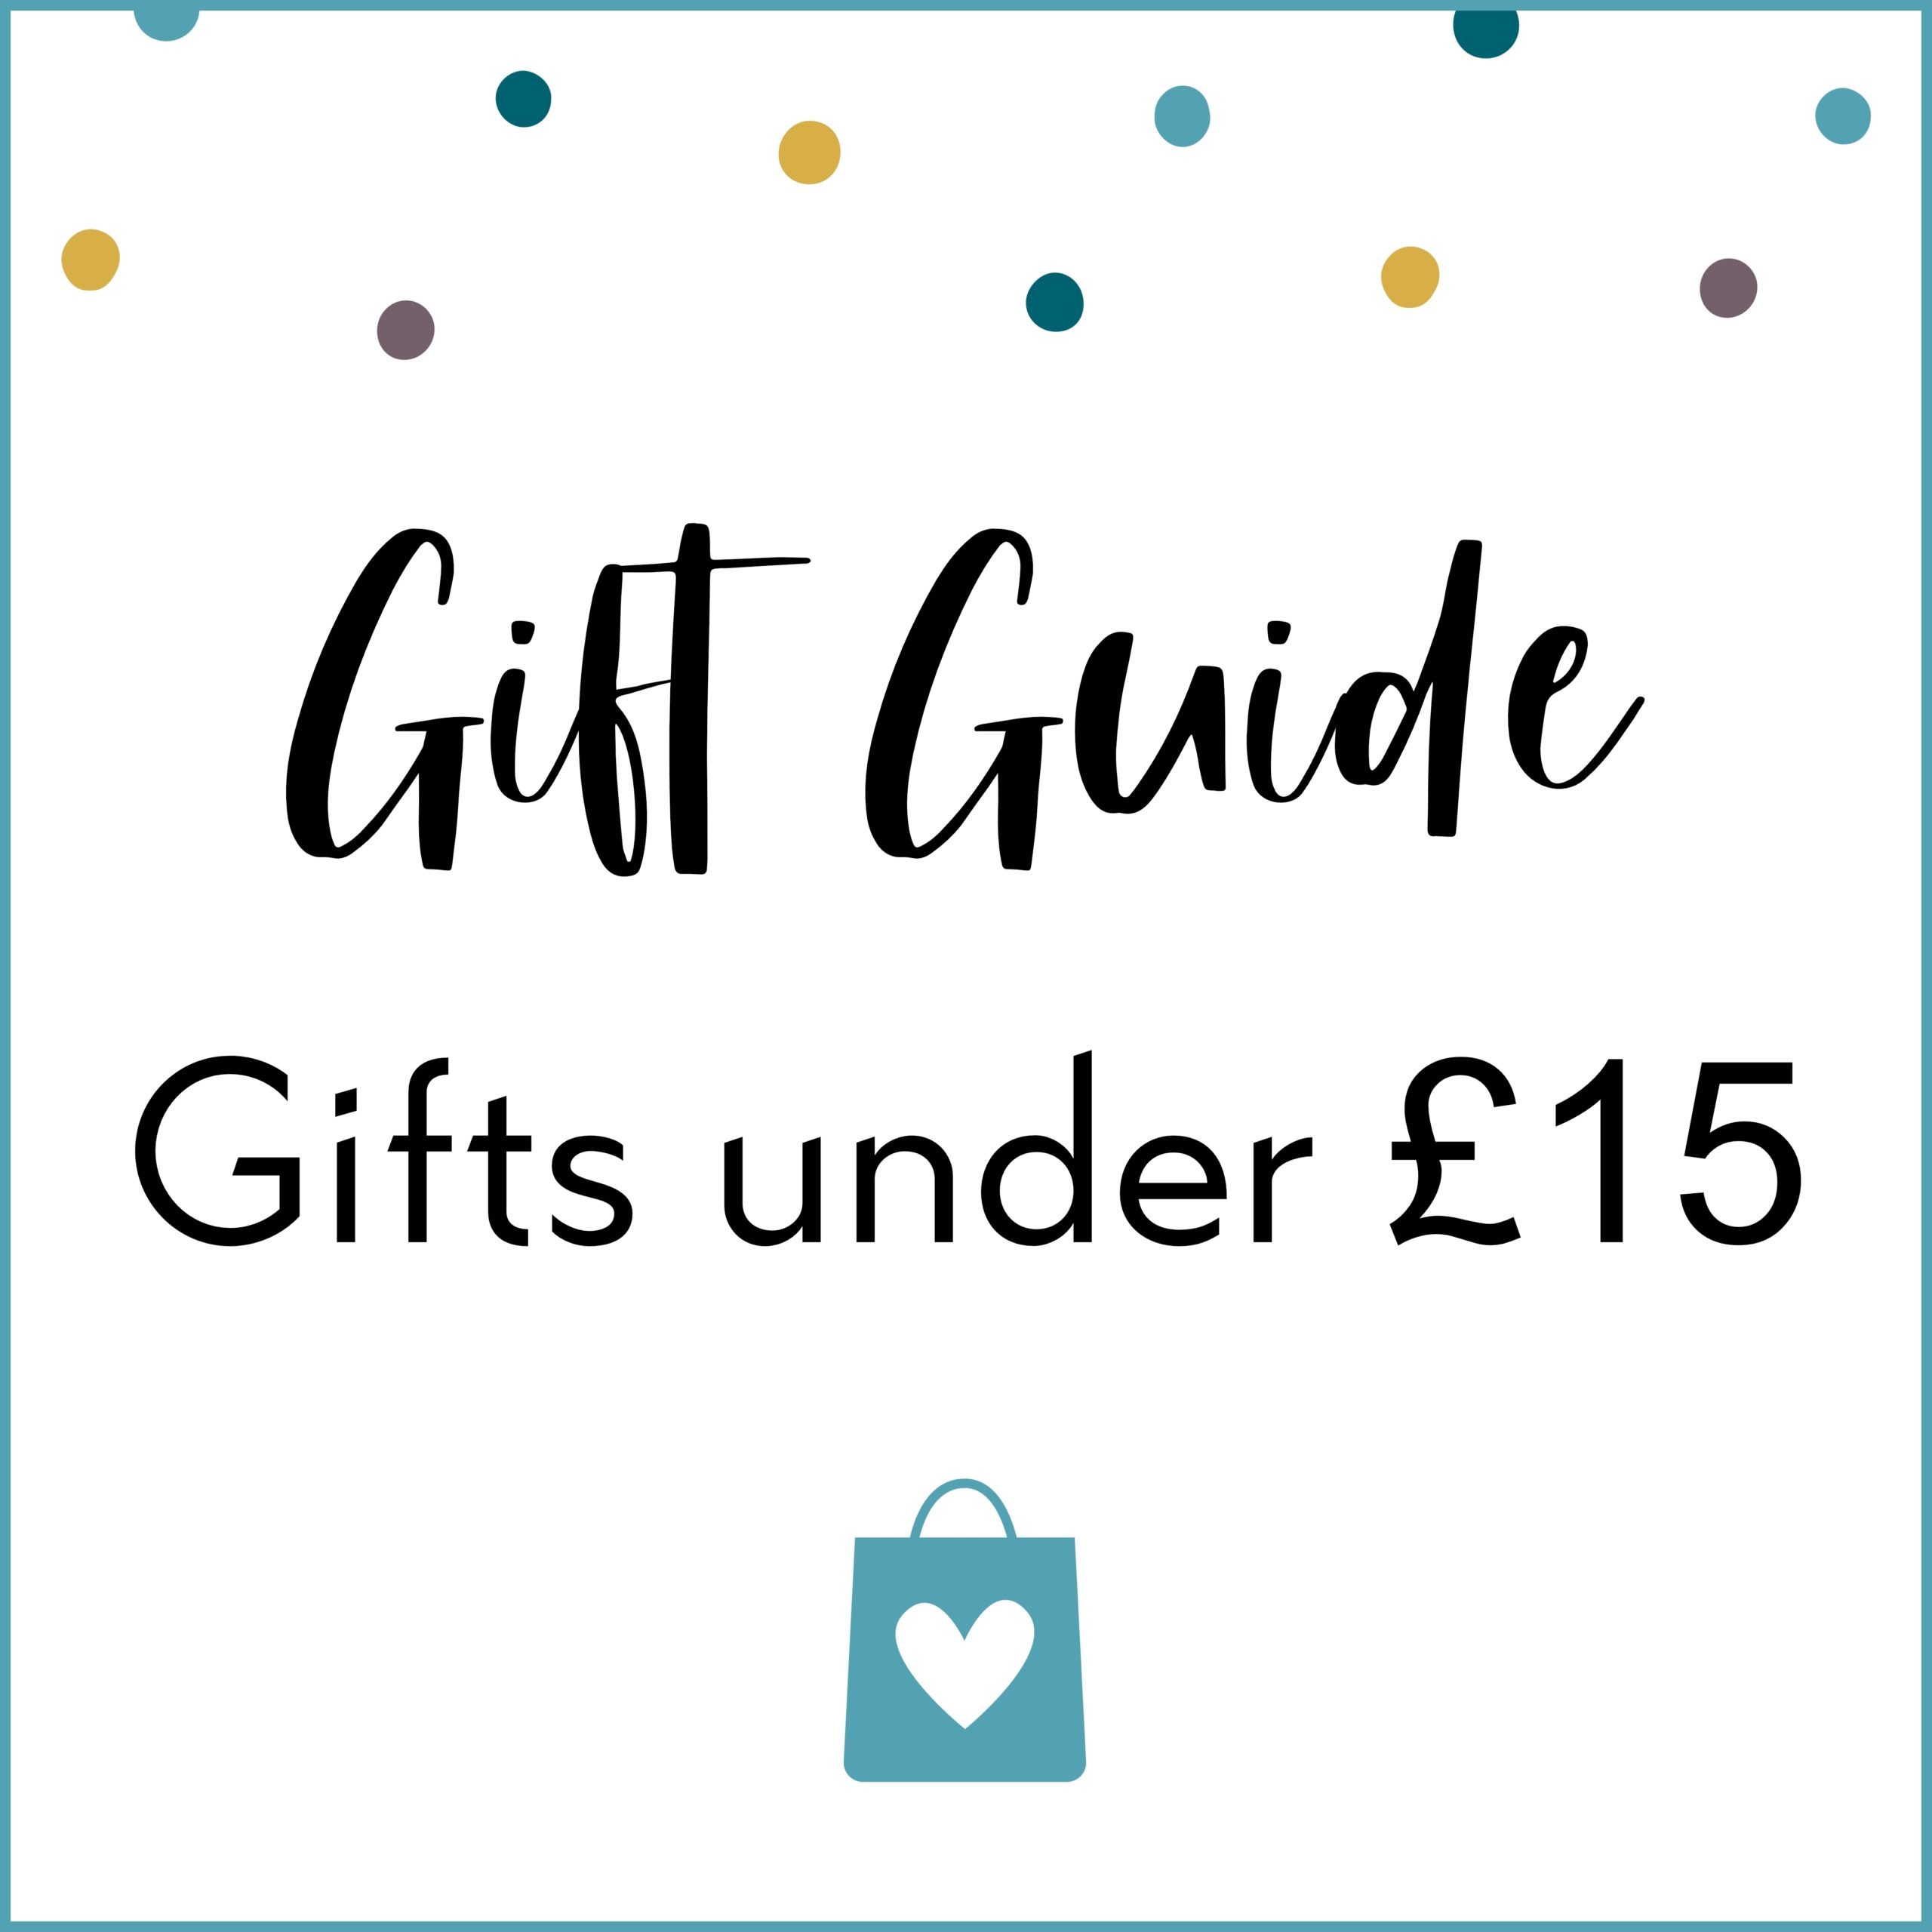 Gifts under £15 Gift Guide